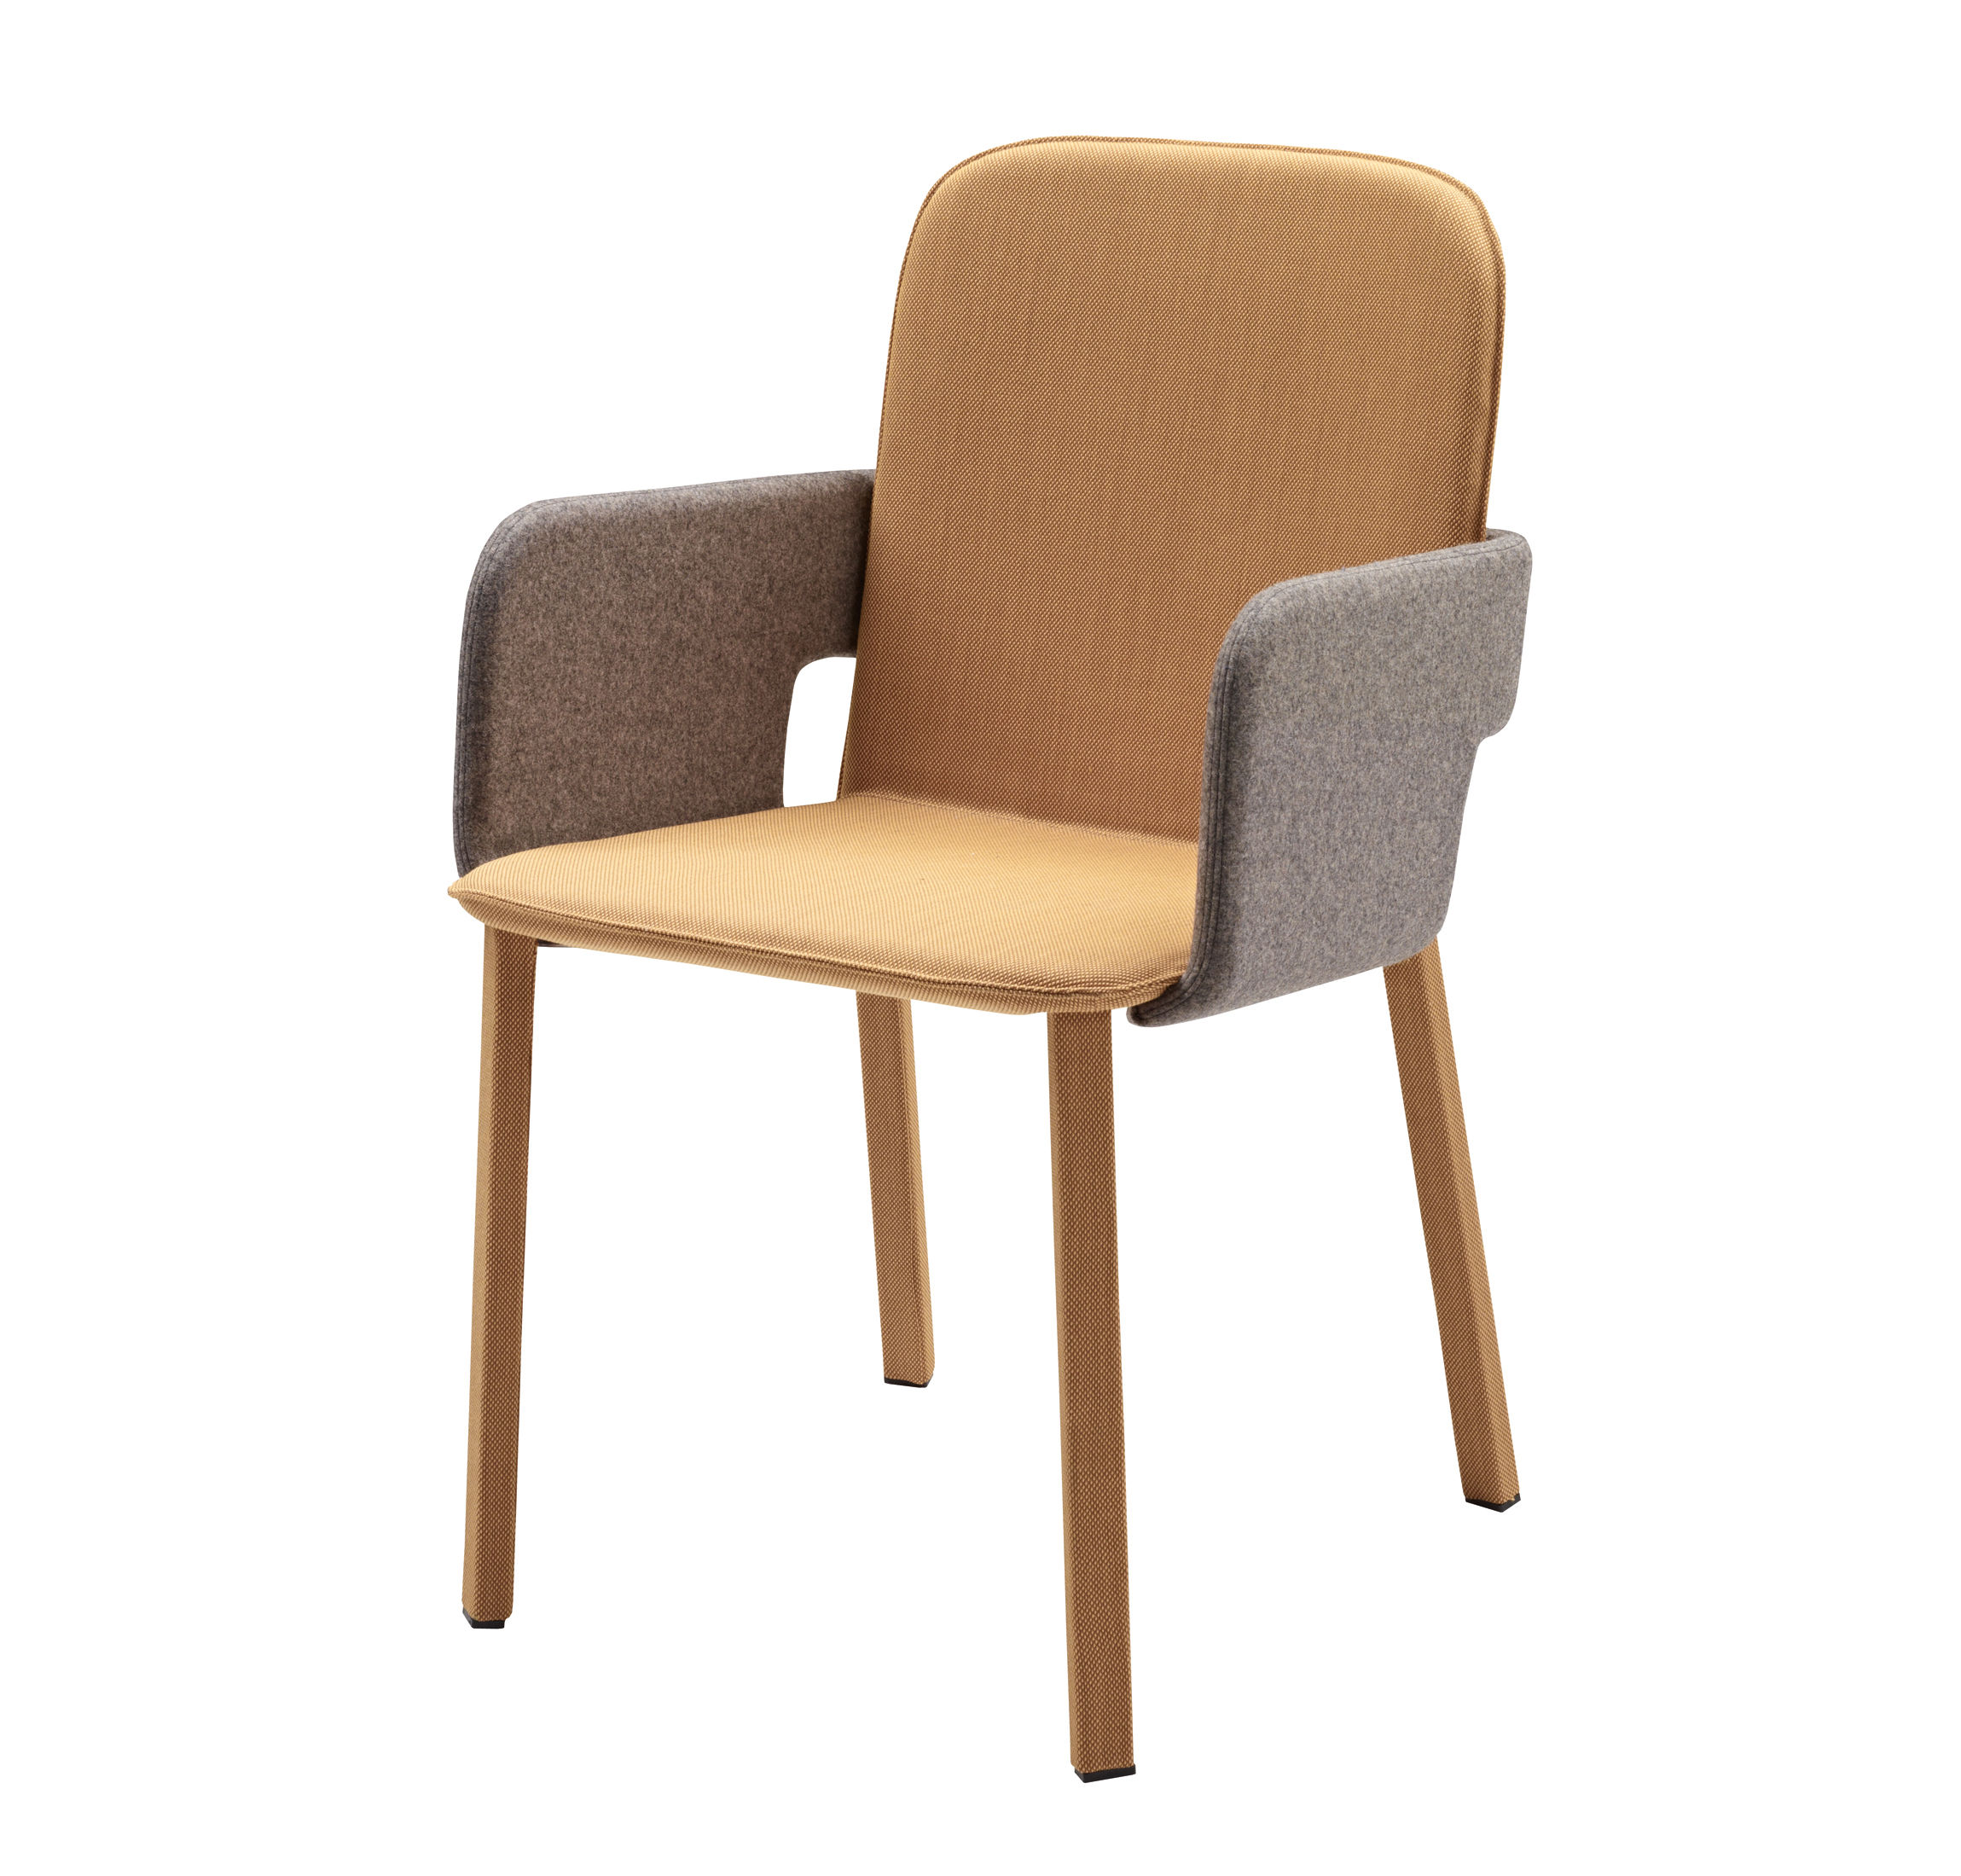 fauteuil toast ocre accoudoirs gris casamania made. Black Bedroom Furniture Sets. Home Design Ideas